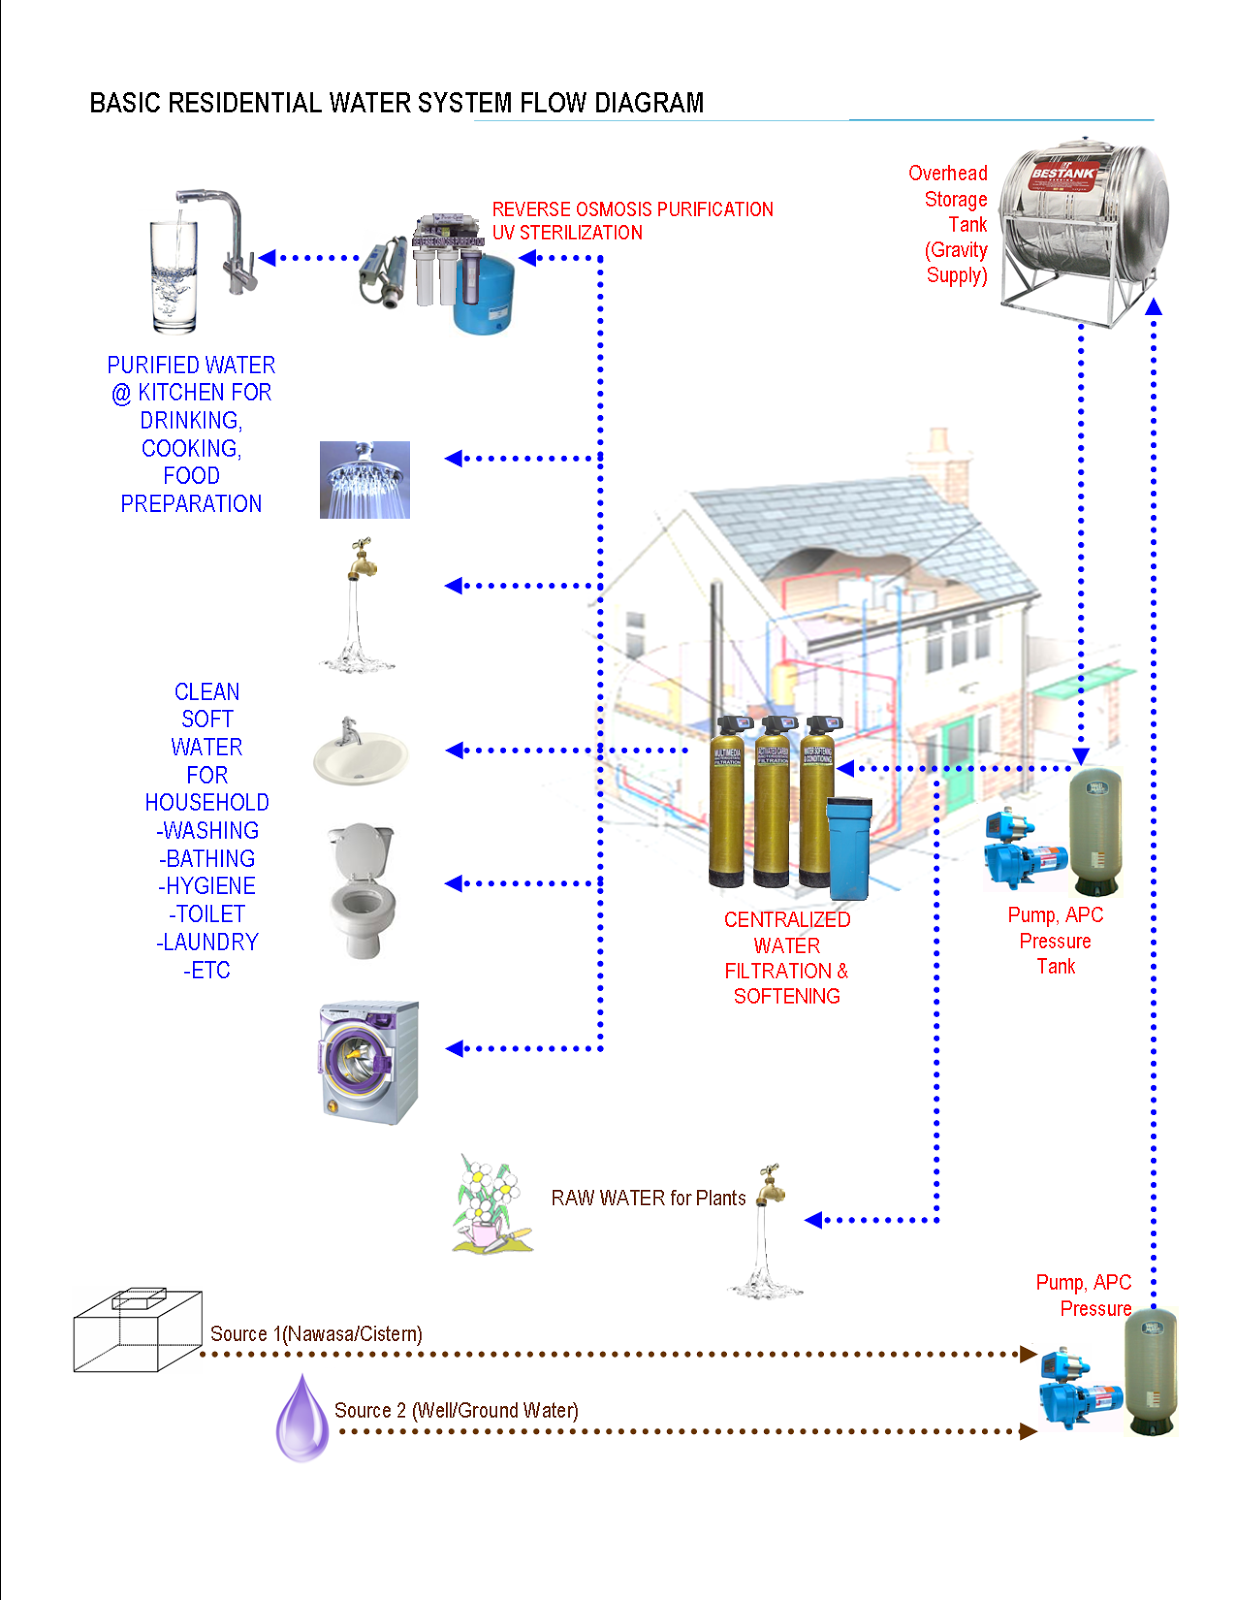 small resolution of basic residential water systems flow diagram centralized water filtration softening system delivers purified water at kitchen for drinking cooking